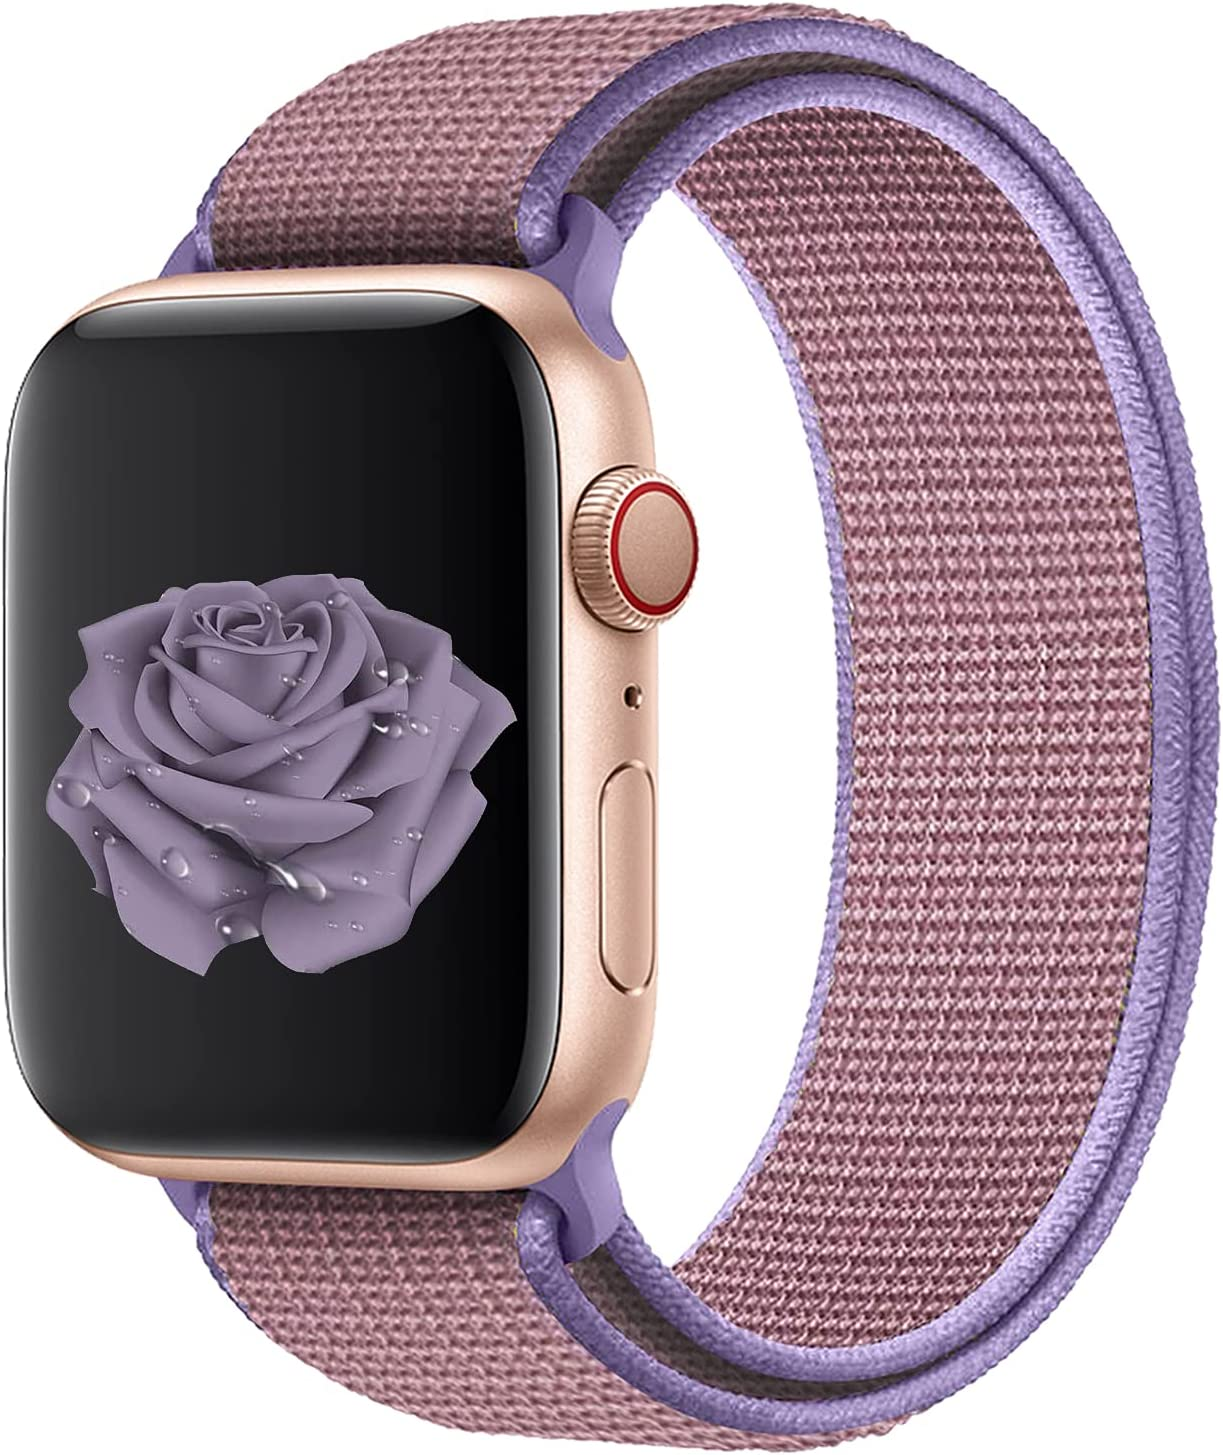 Watdpro Compatible with for Apple Watch Band 38mm 40mm 42mm 44mm, Soft Adjustable Lightweight Replacement Wristbands Compatible with for iWatch Series 6 5 4 3 2 1 SE